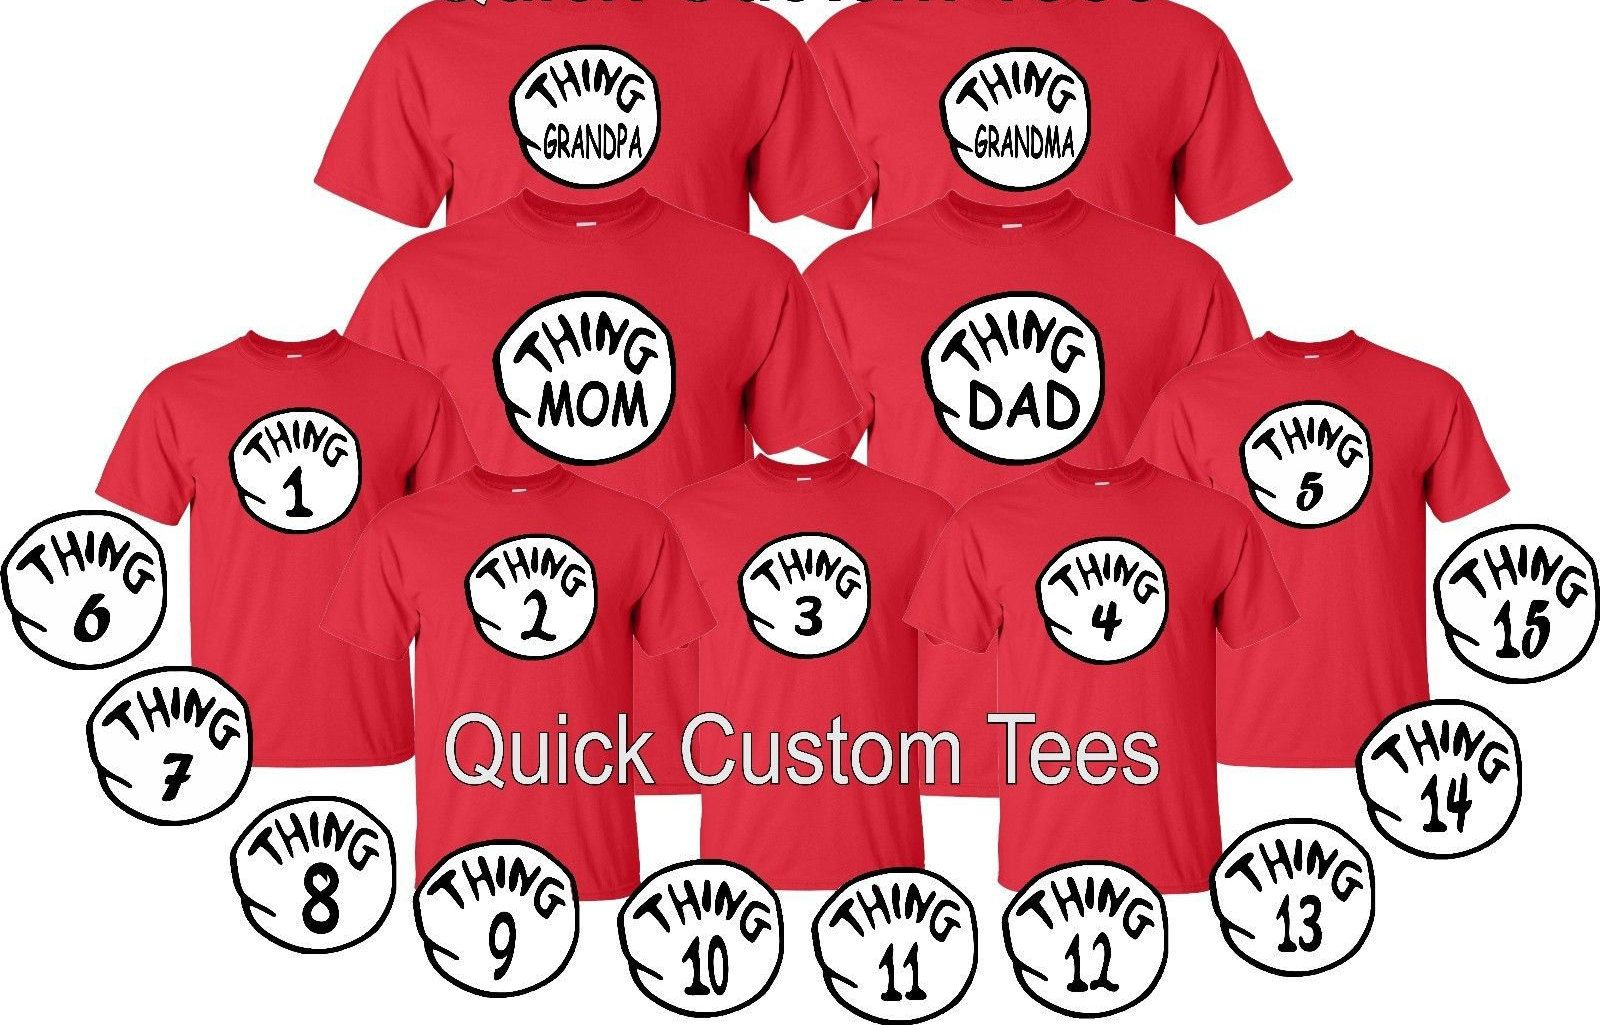 59c793fdda thing 1, thing 2, thing brother , thing sister, grandma, grandpa, 1,2,3,....,  thing one, tow matching tshirts all size kids adult cute by GoCustom on Etsy